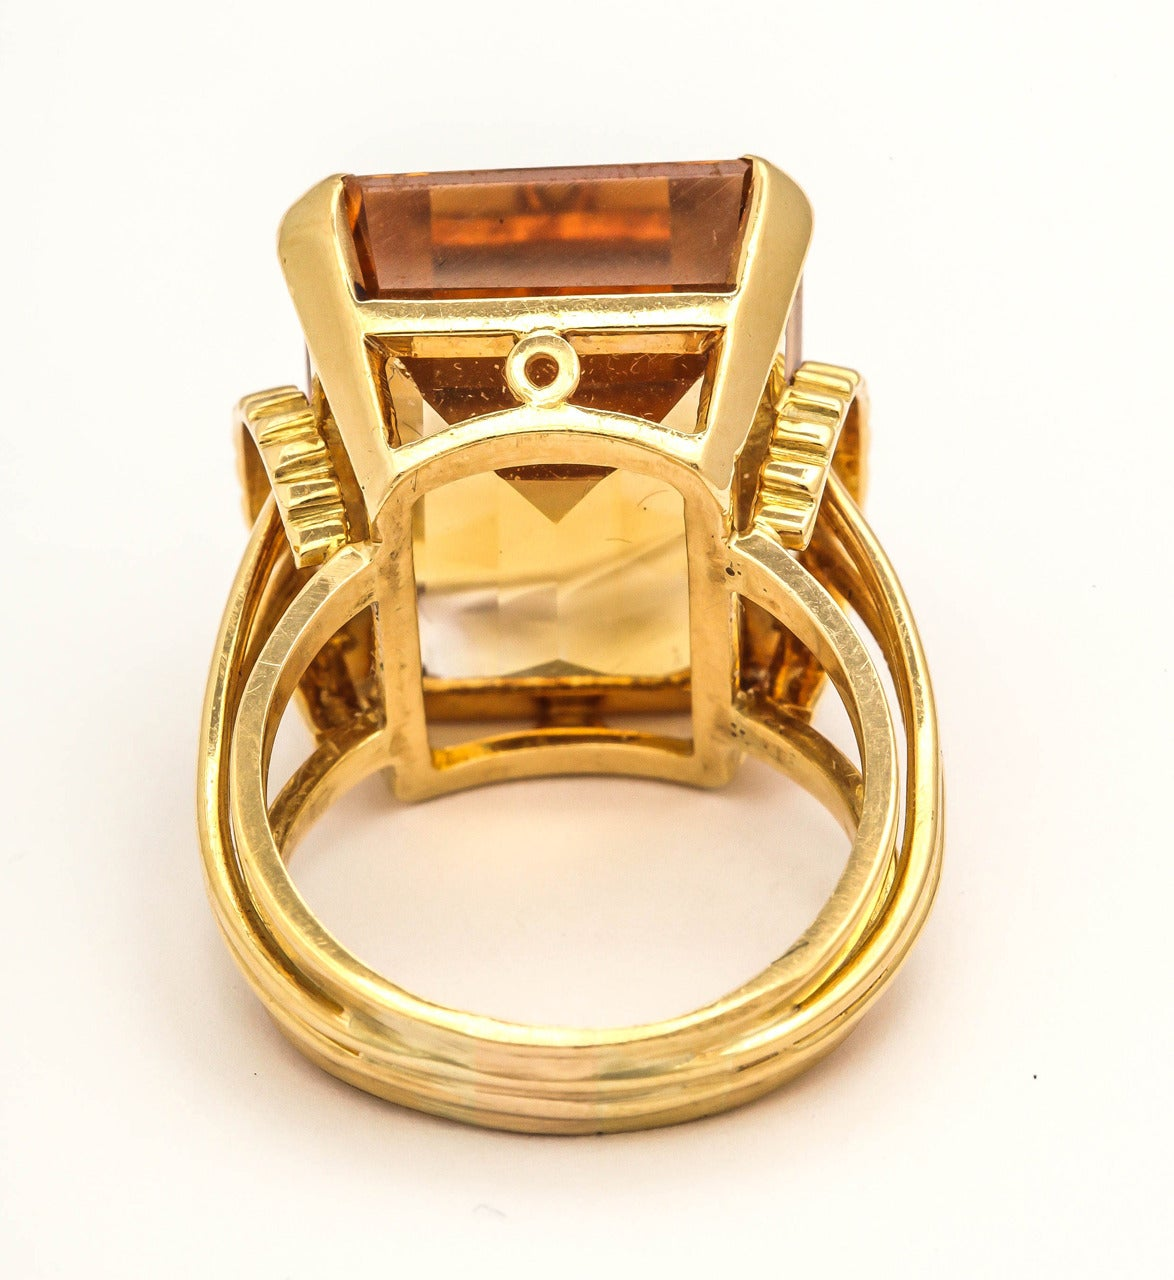 English Retro Citrine 18k Gold Cocktail Ring, 1950s For Sale 2